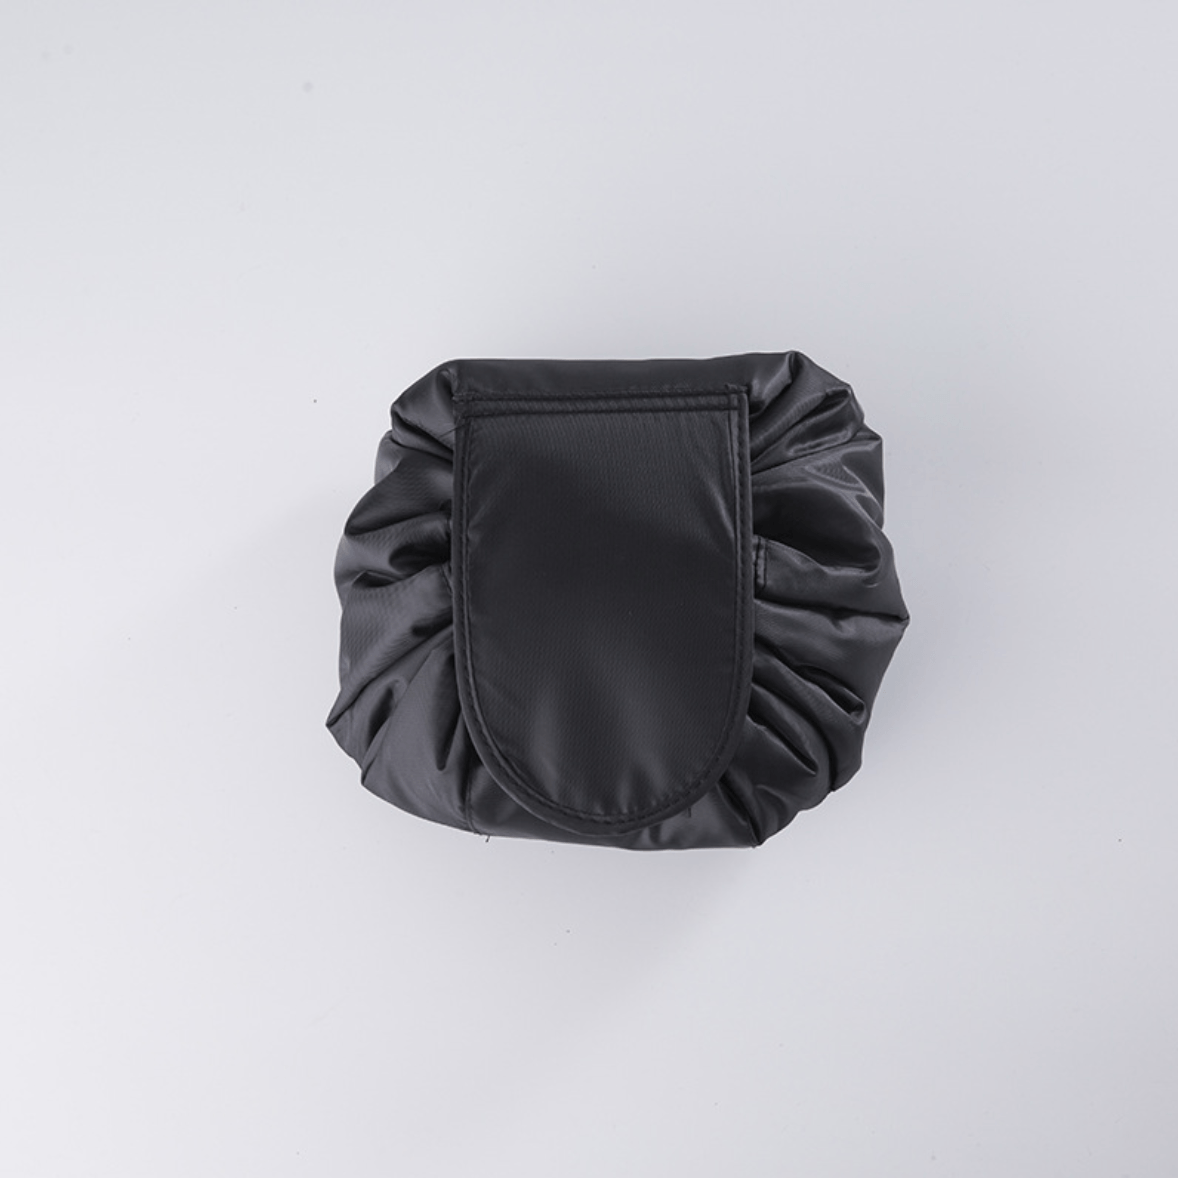 Large Capacity Portable Drawstring